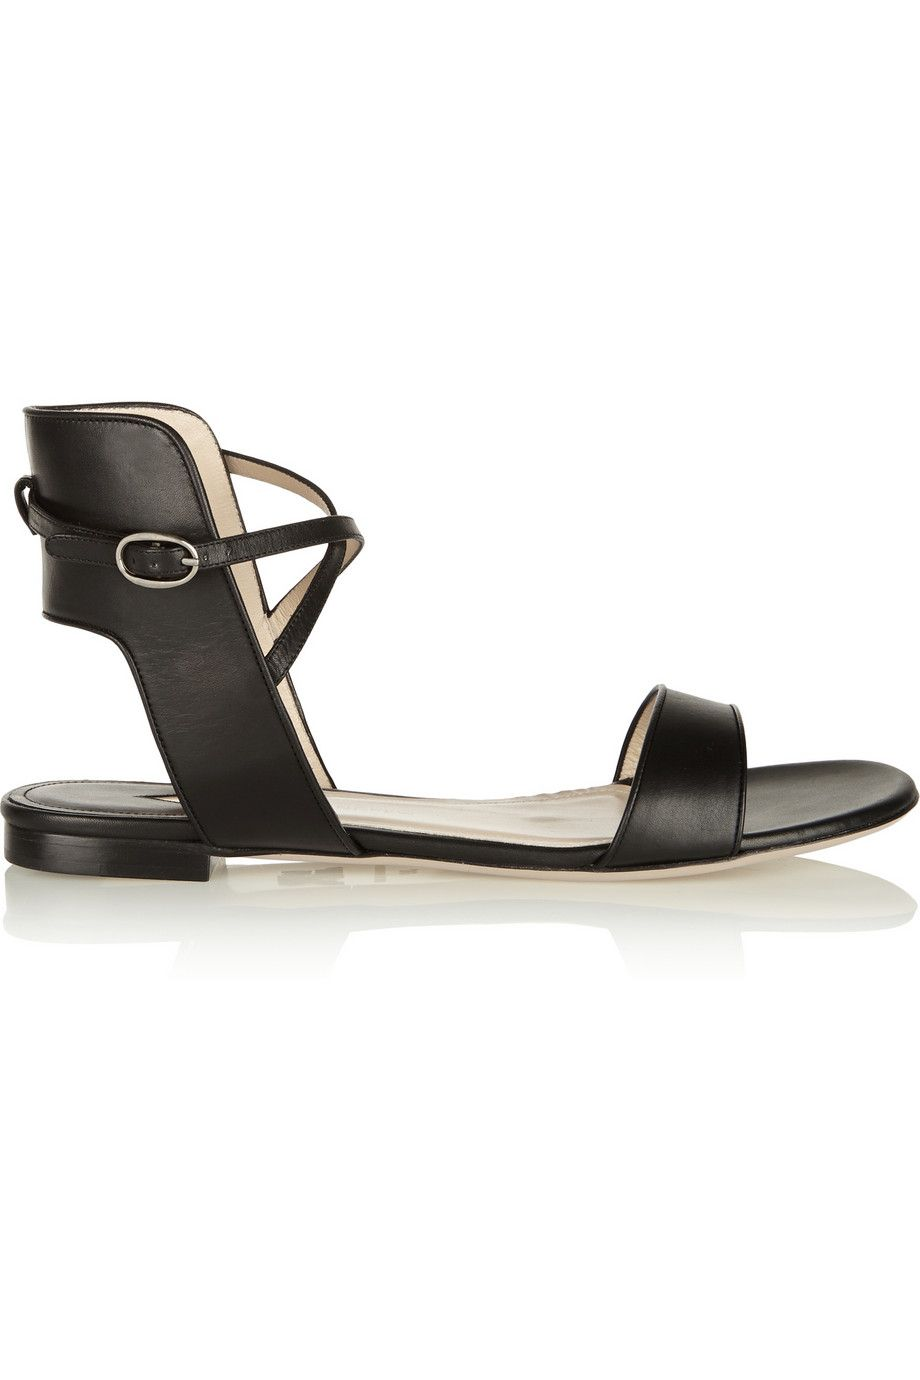 PAUL ANDREW Madison Leather Sandals. #paulandrew #shoes #sandals